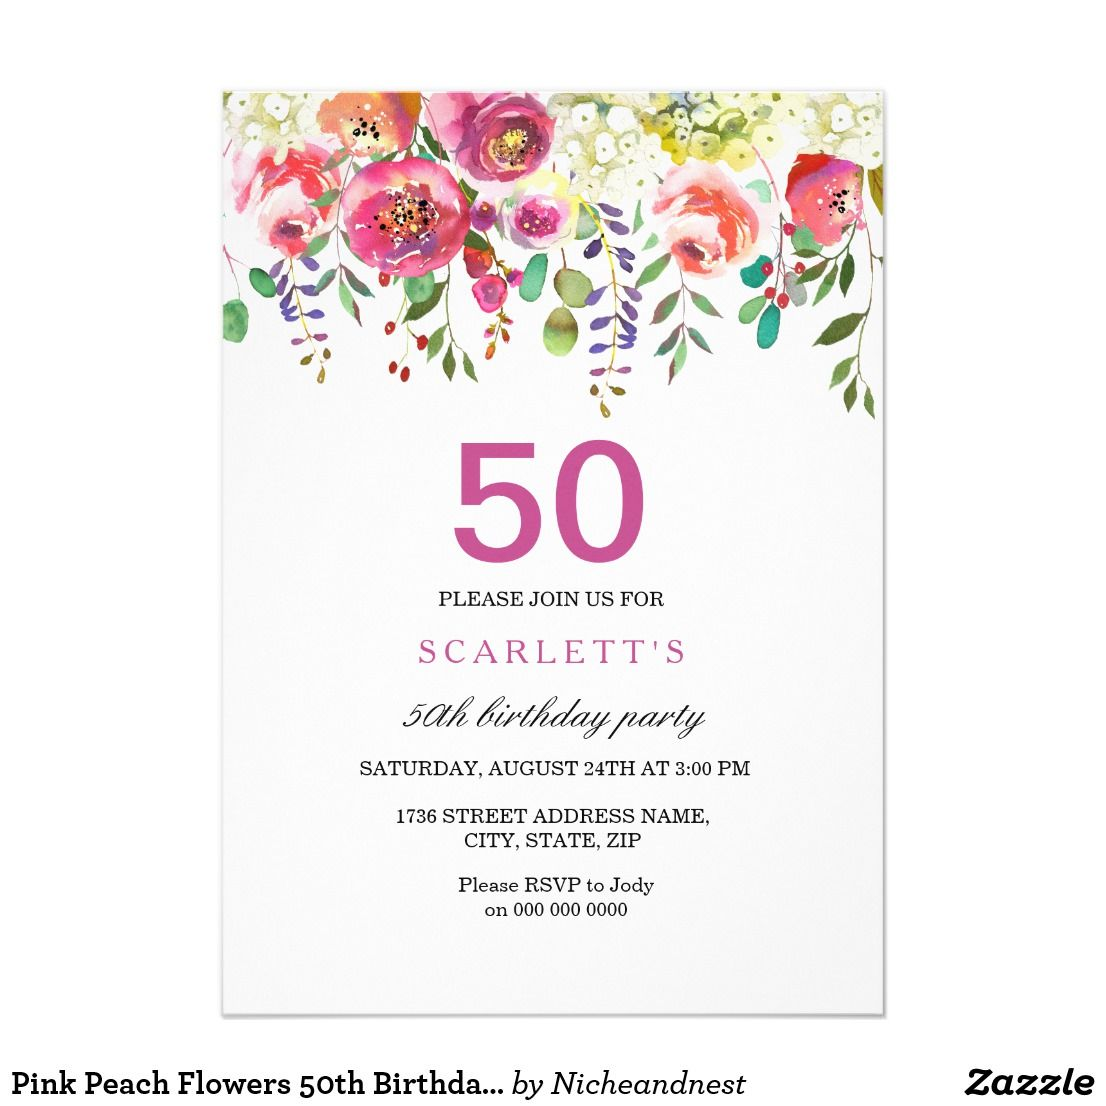 Pink Peach Flowers 50th Birthday Party Invitation | 50th birthday ...